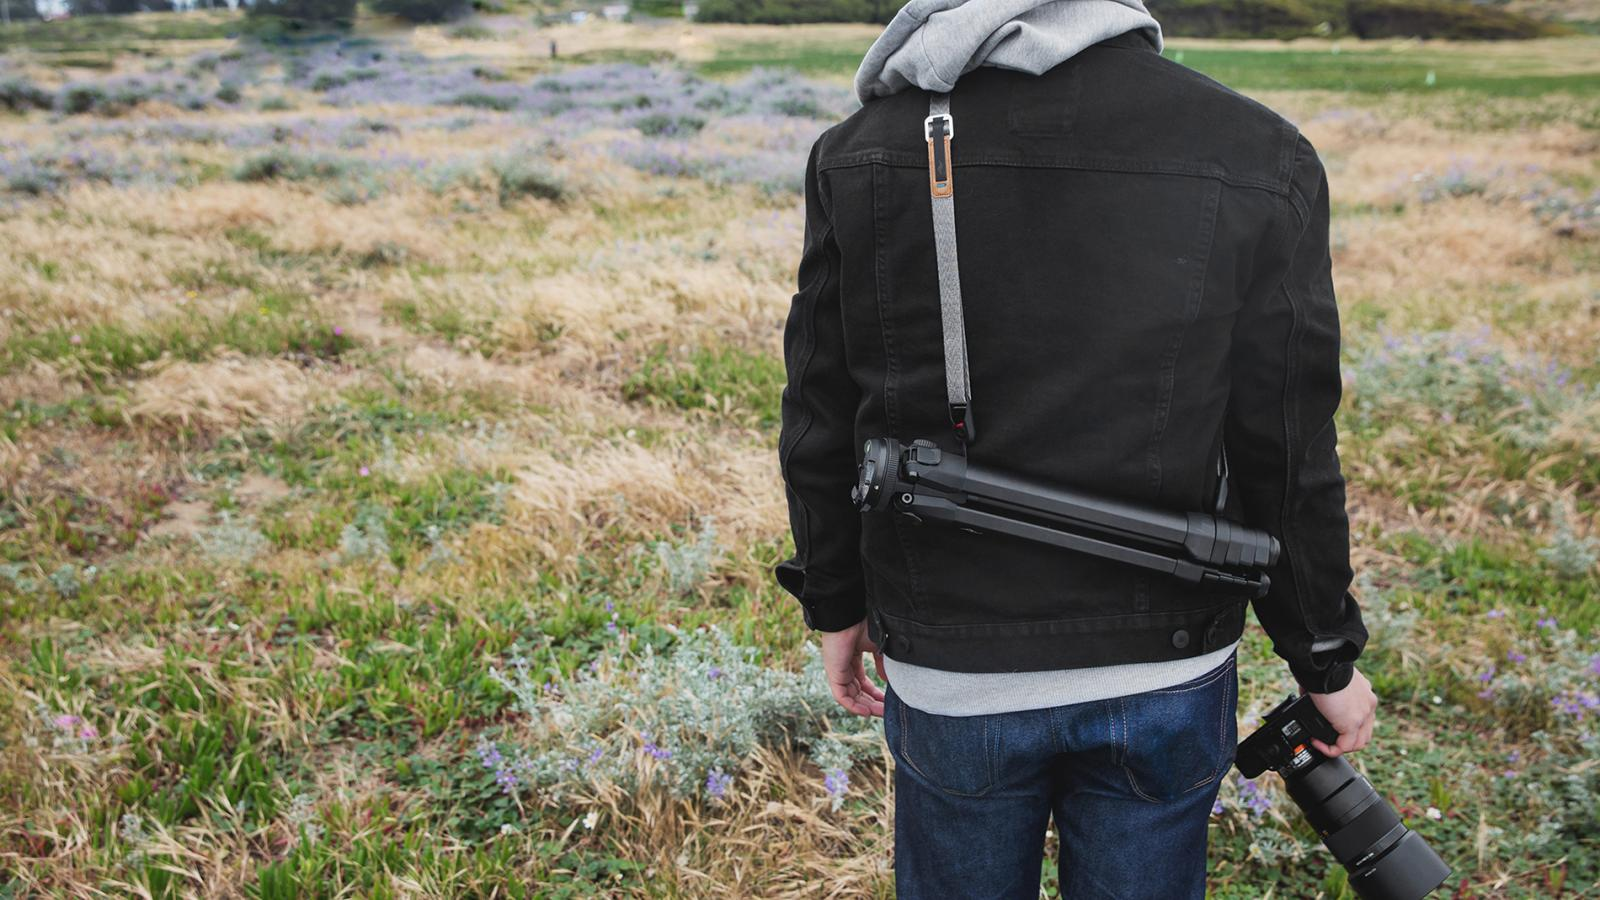 Peak Design is back. Introducing the Travel Tripod